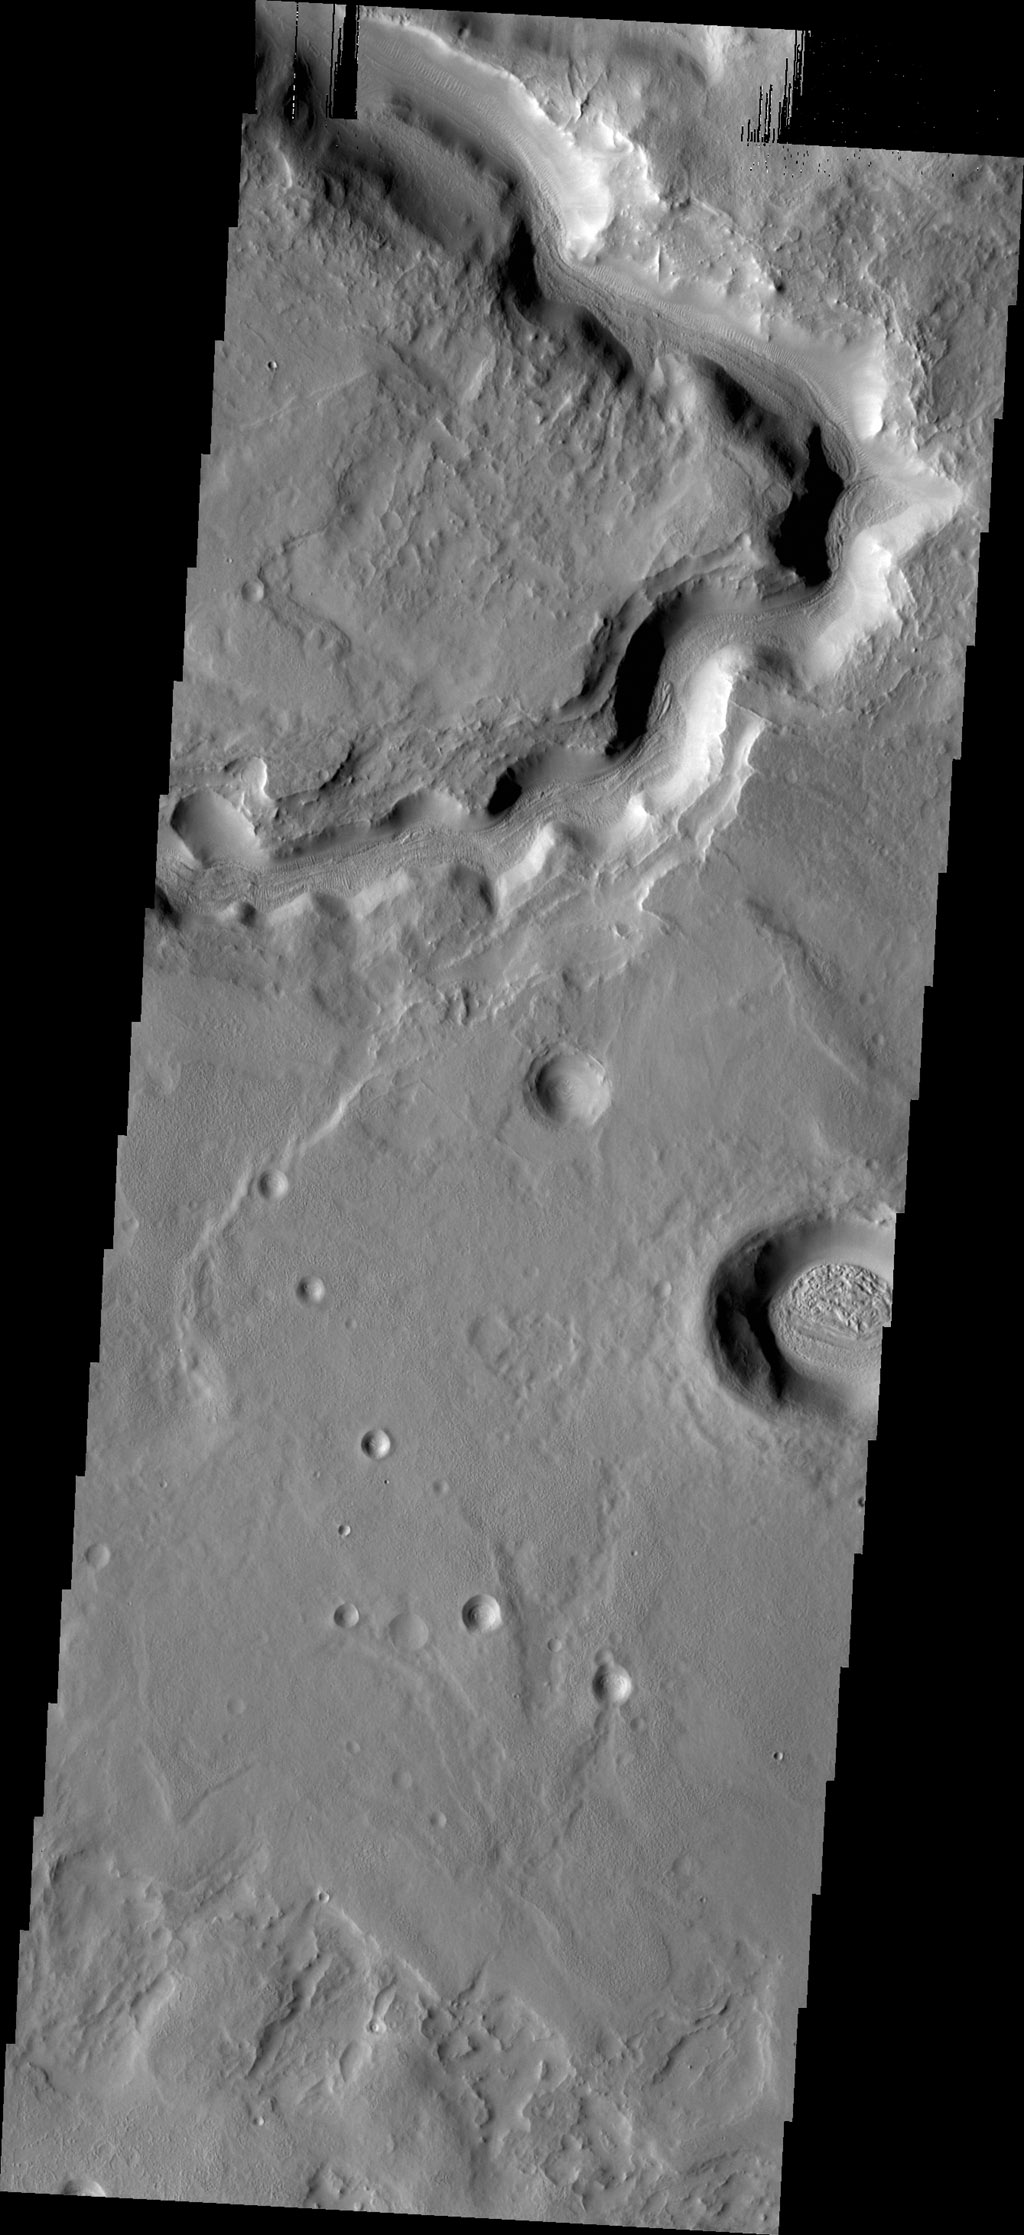 This image captured by NASA's 2001 Mars Odyssey spacecraft shows a portion of an unnamed channel near Auqakuh Vallis.